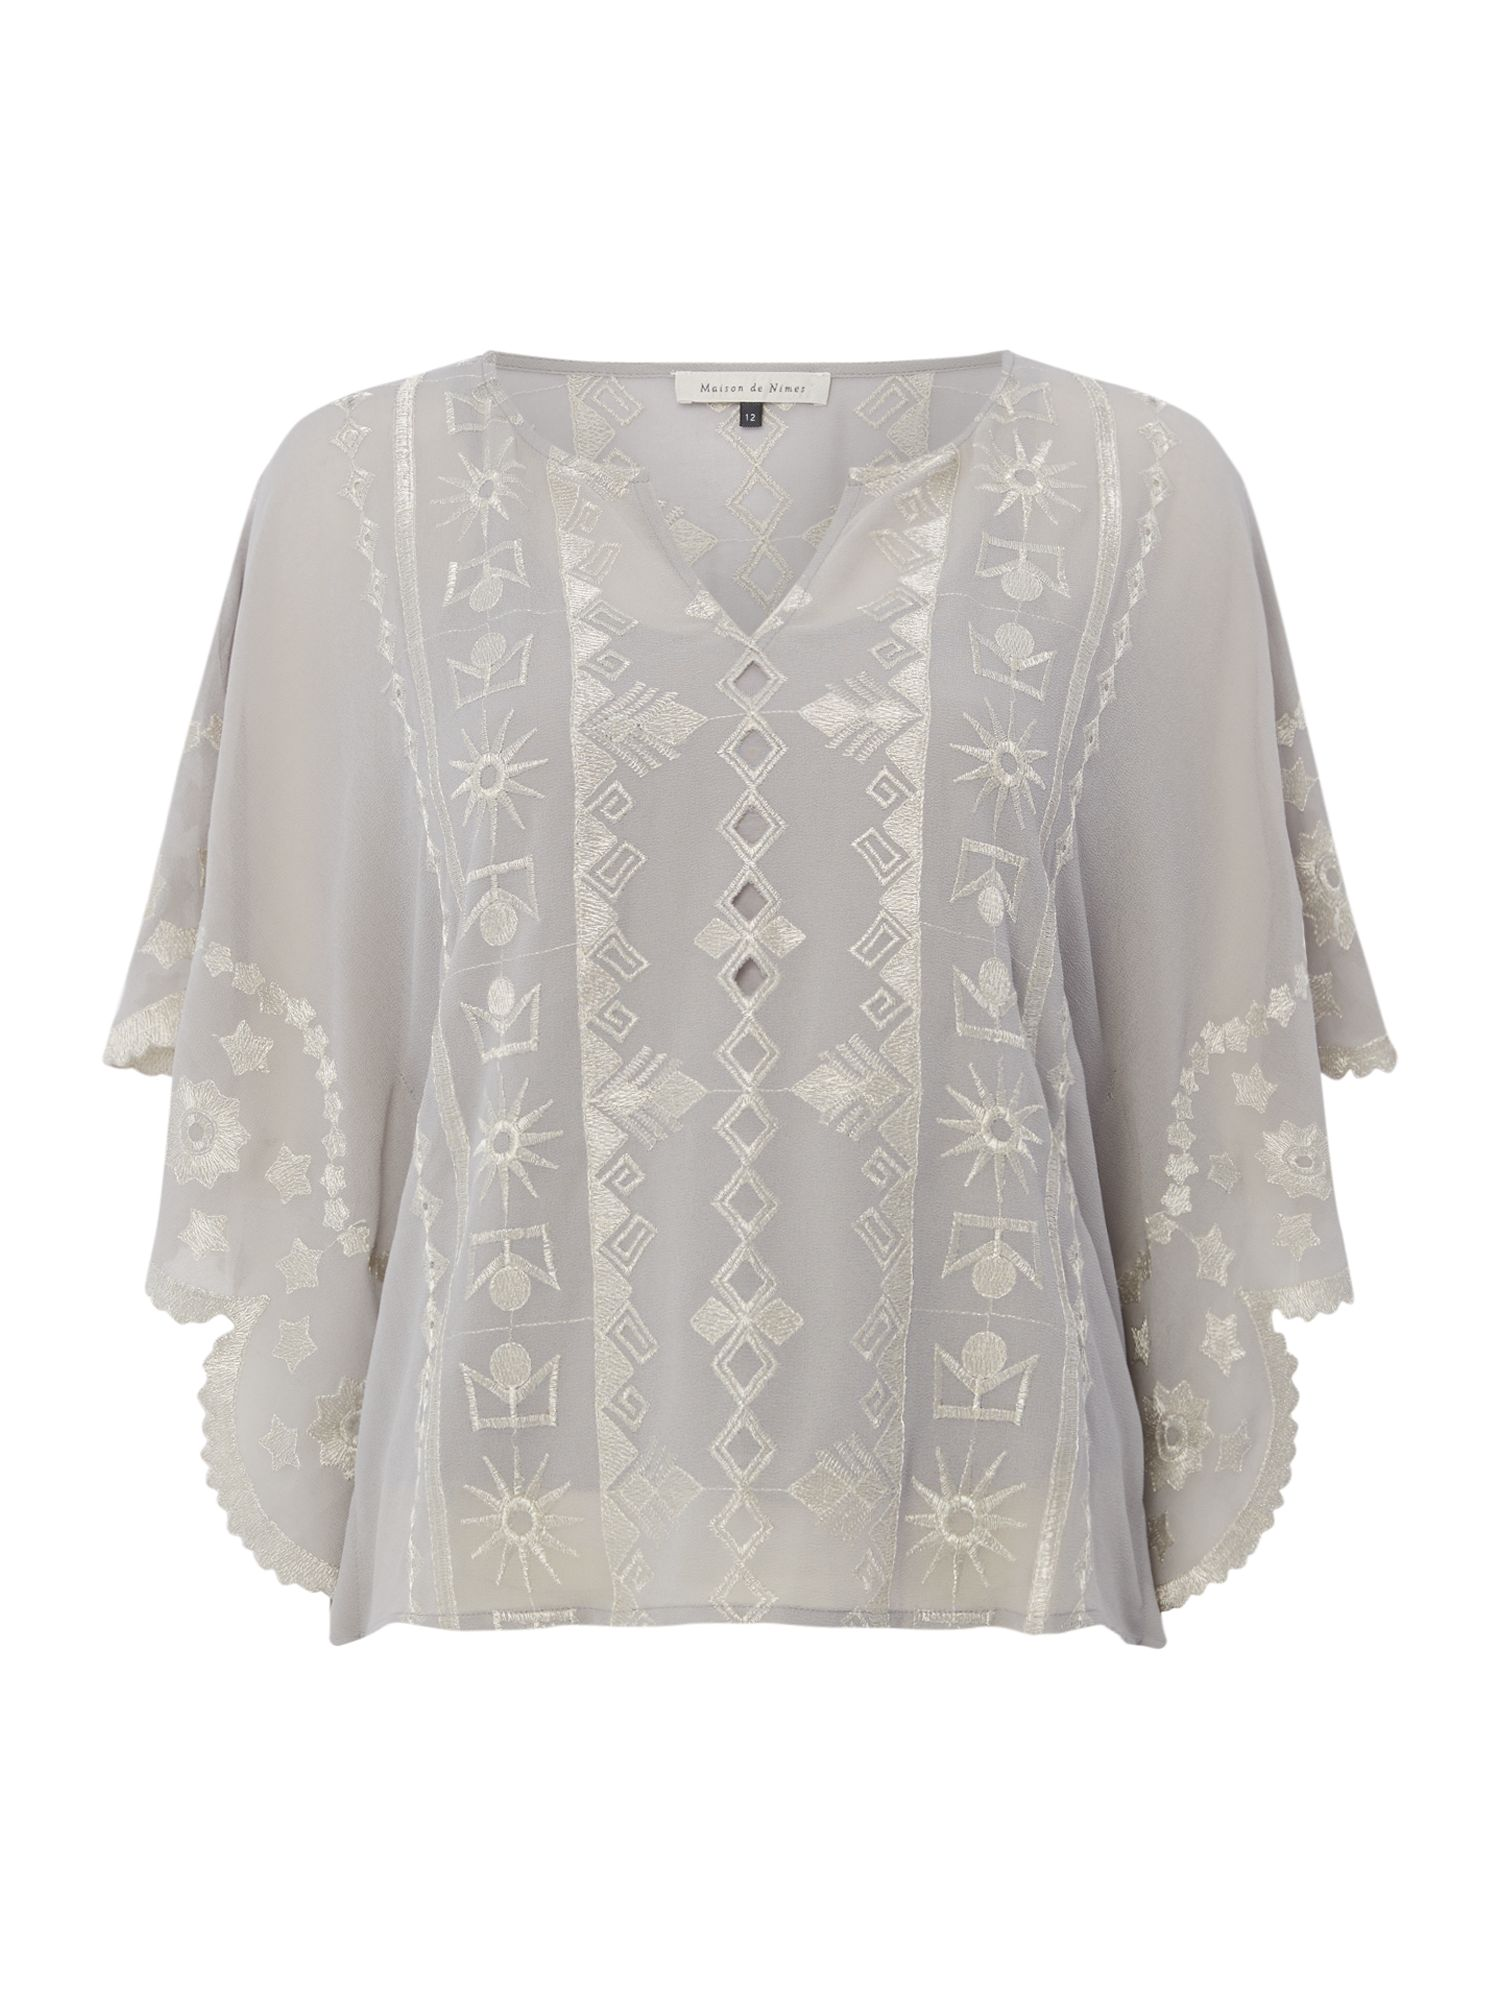 Maison De Nimes Embroidered Lurex Blouse, Grey